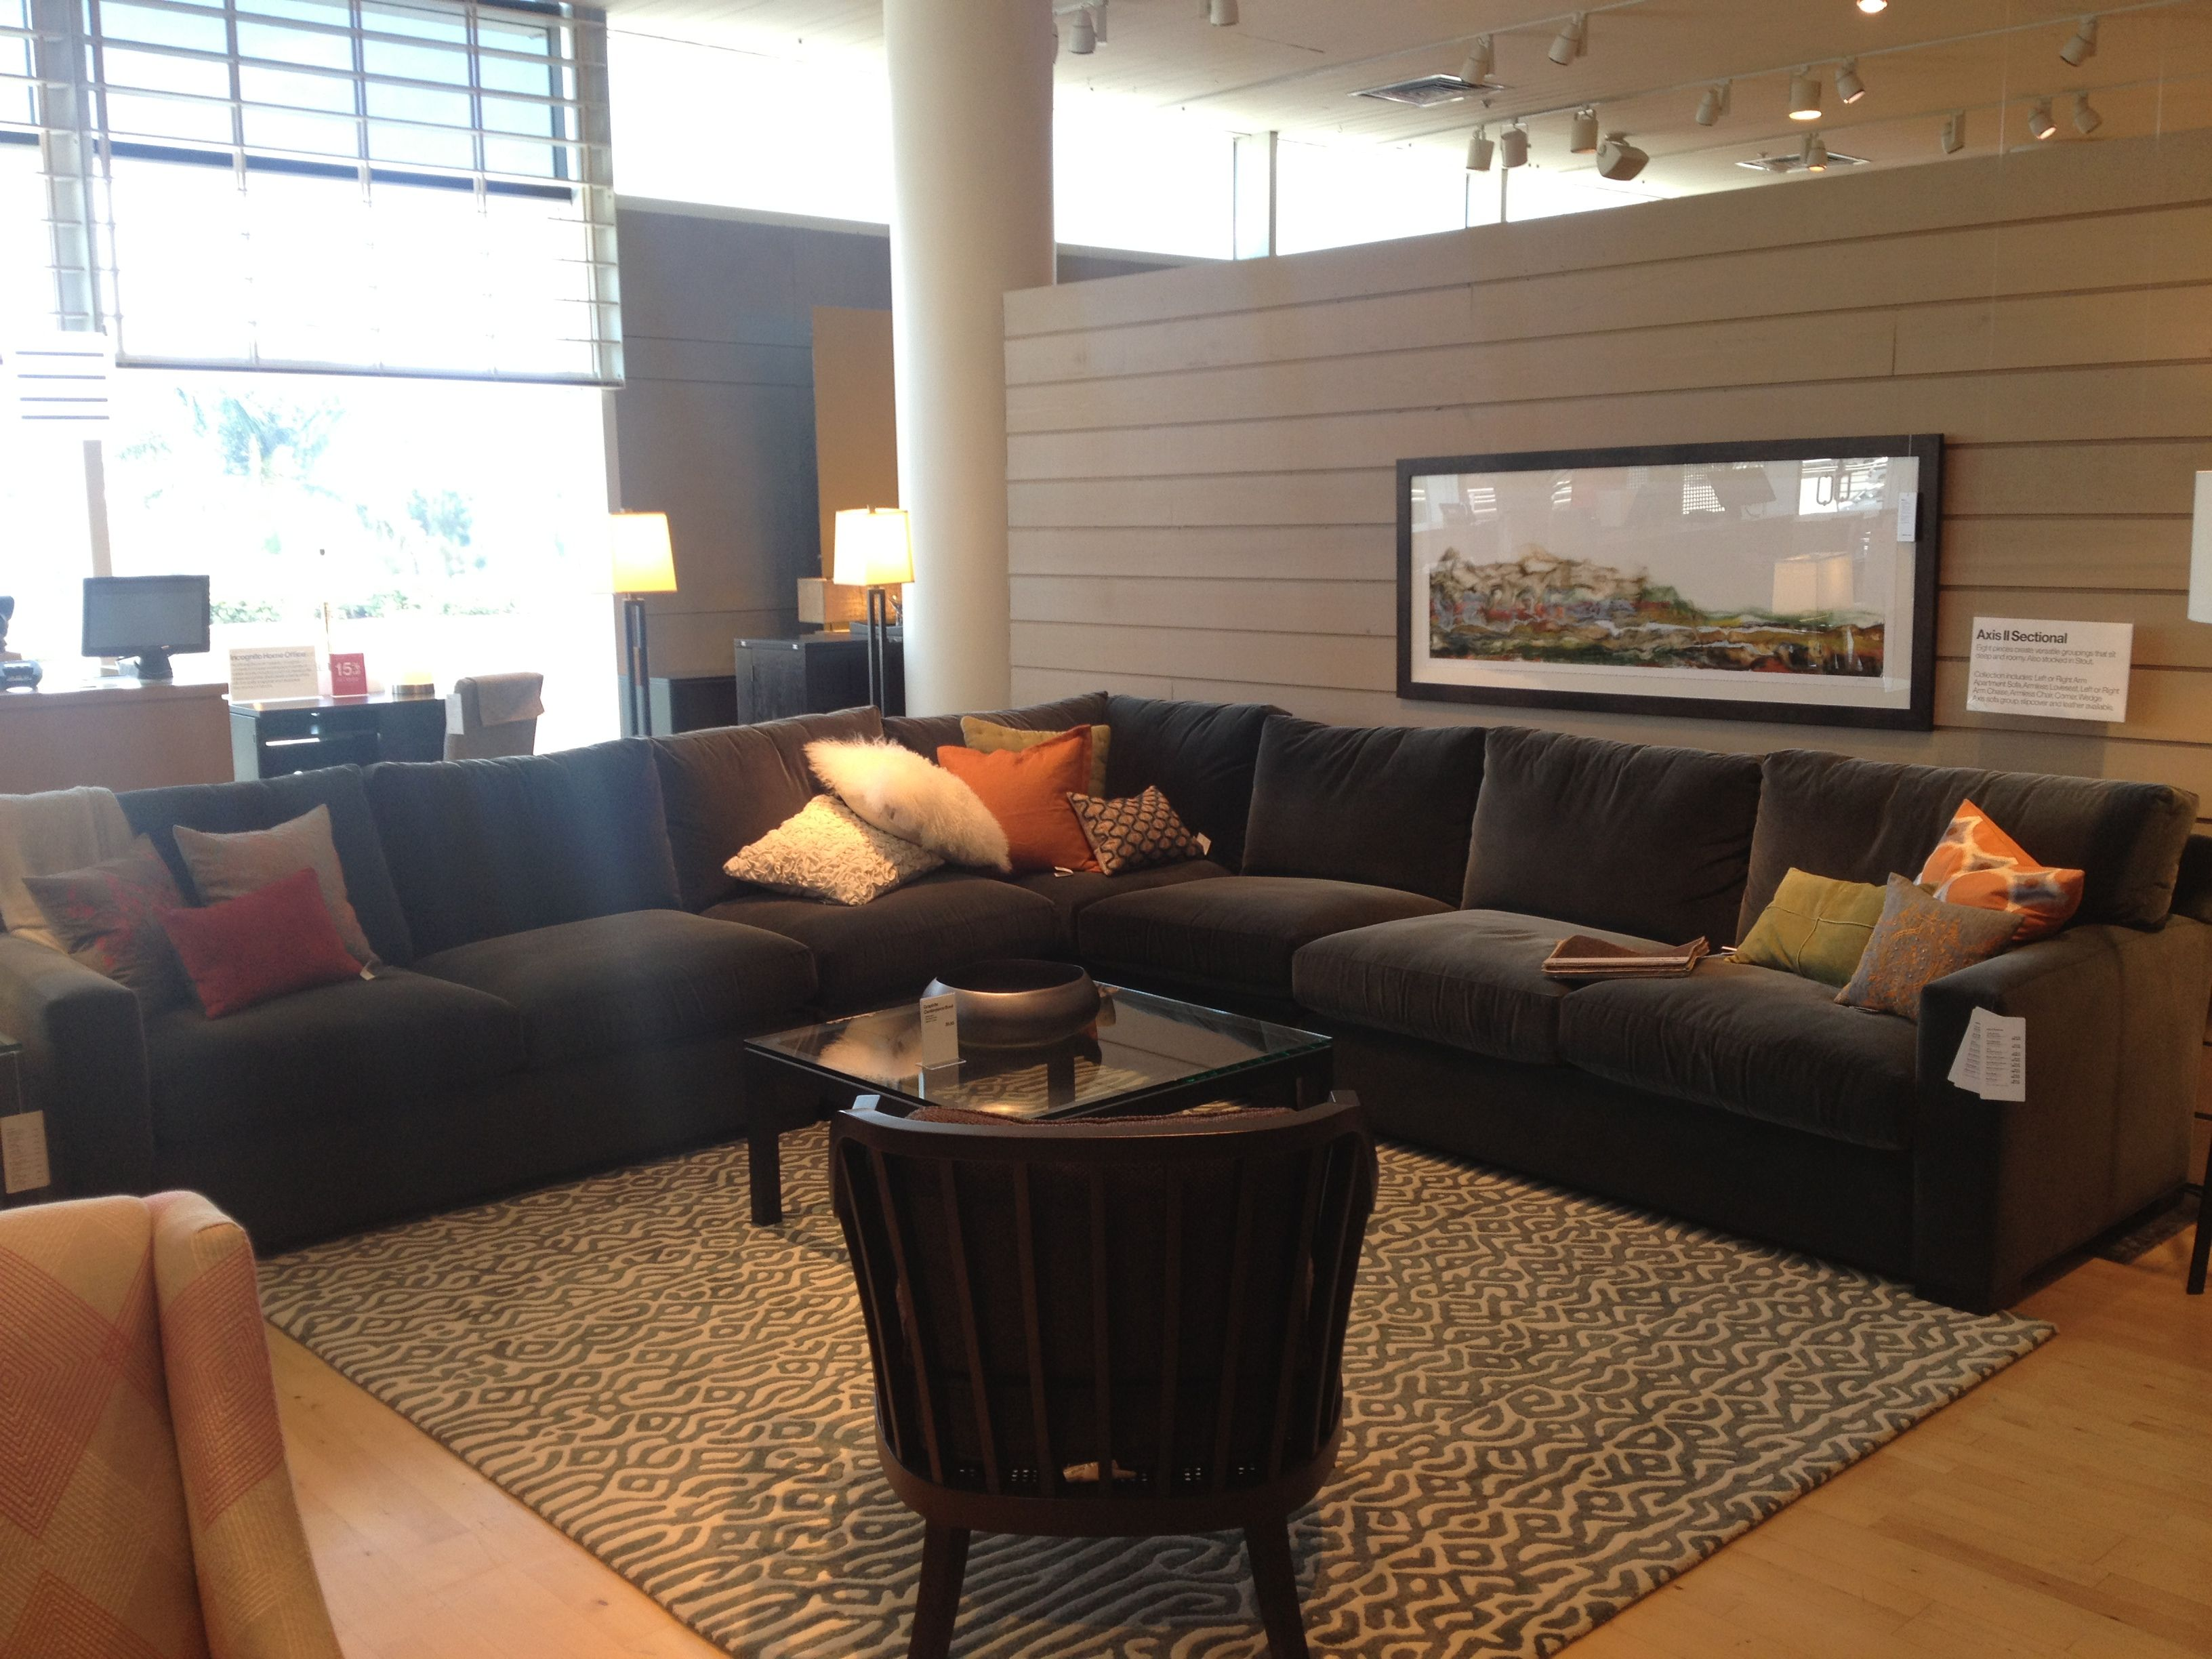 Crate & Barrel sectional Axis II color Charcoal $2700 $3000